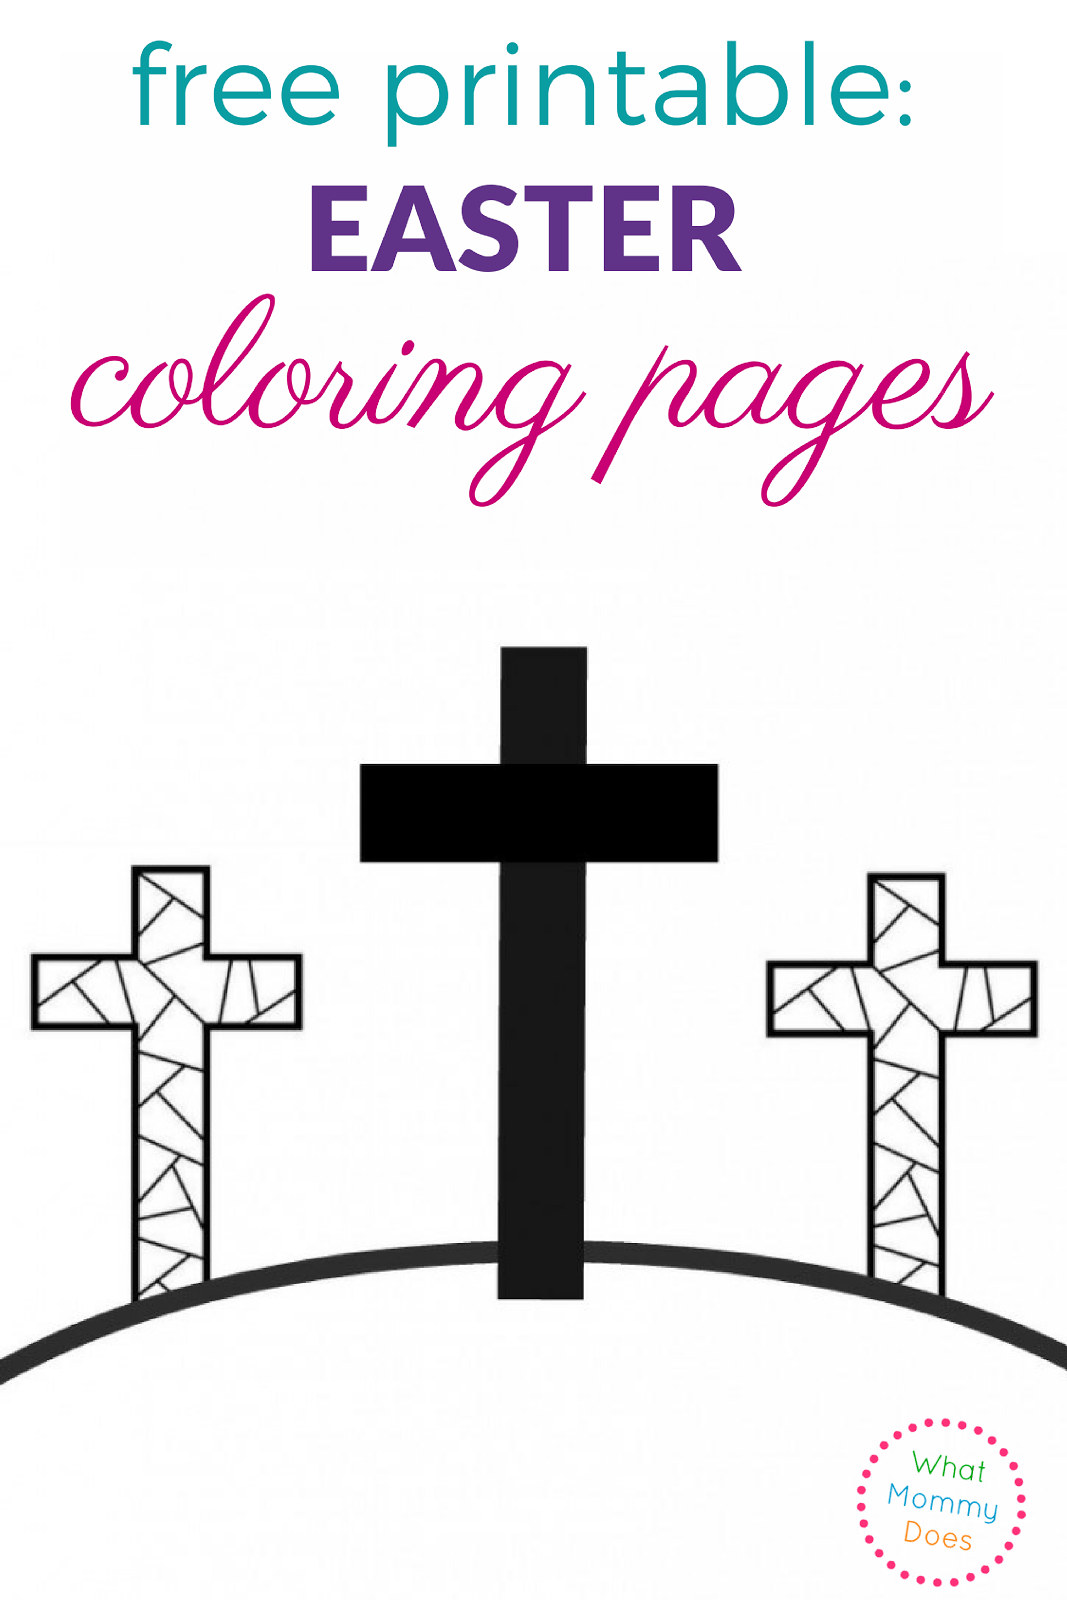 Awesome Easter Cross Coloring Pages Printable